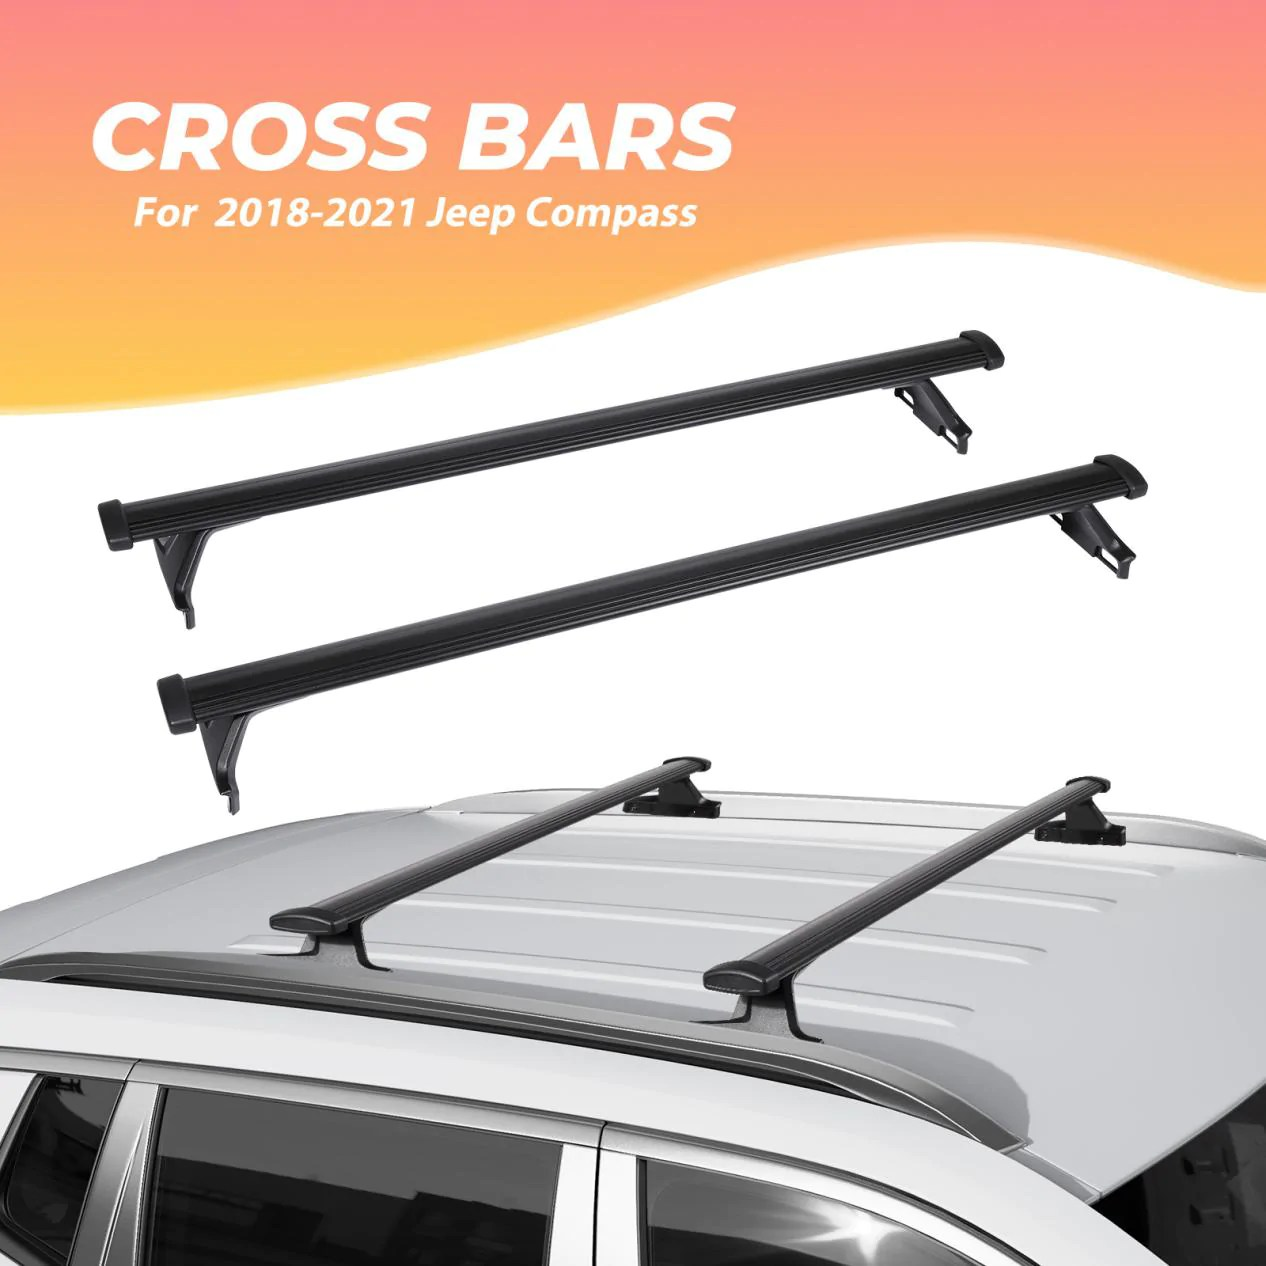 car roof rack cross bars for 2018 2021 jeep compass with side rails a bougerv